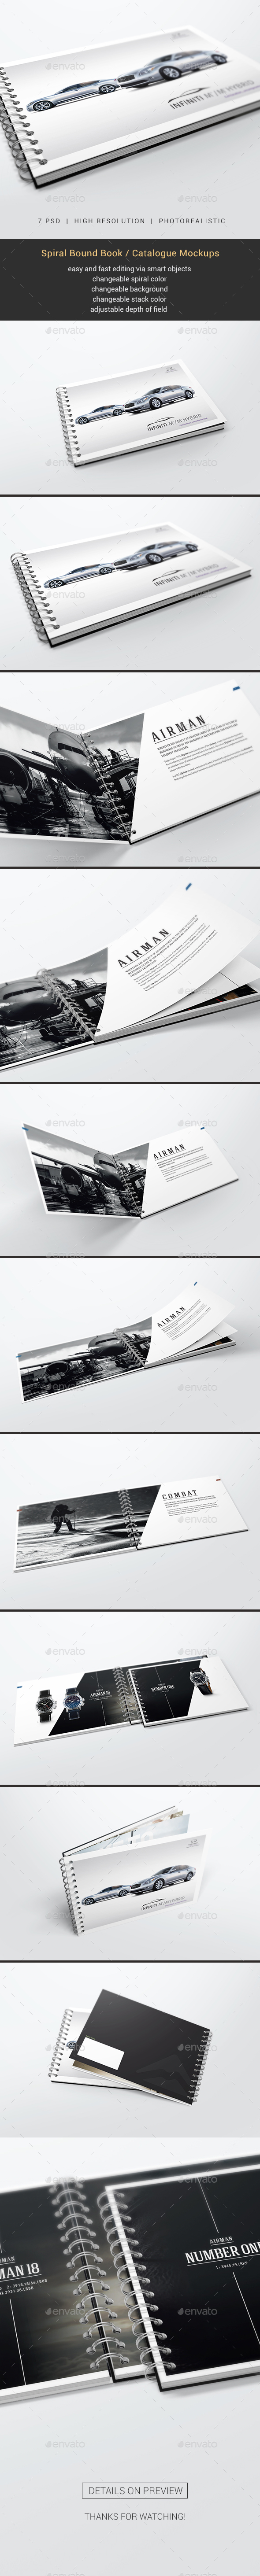 Spiral Bound Book / Catalogue Mockups - Books Print